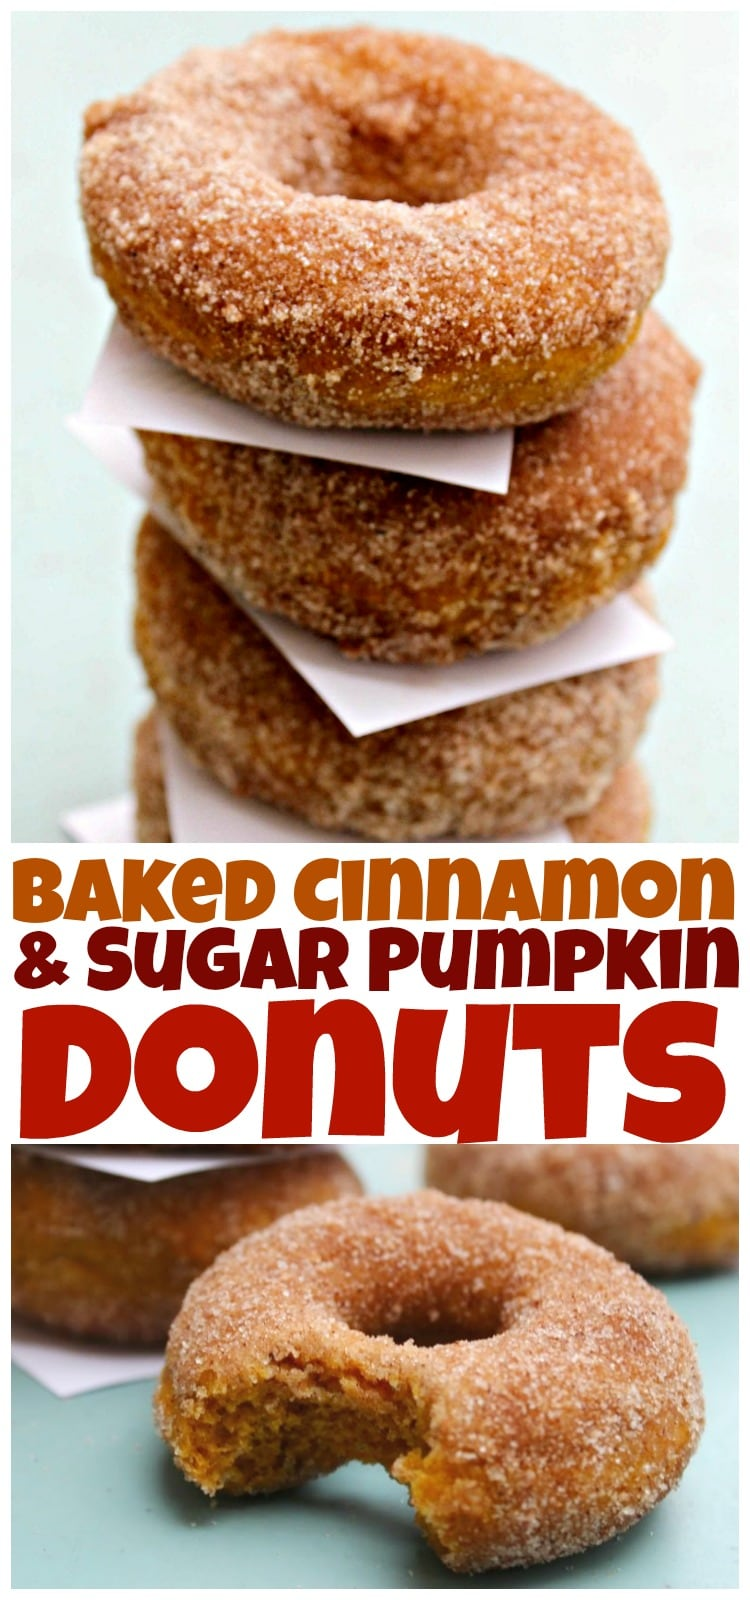 Baked Cinnamon & Sugar Pumpkin Donuts - An easy recipe forbaked pumpkin donutscoated in cinnamon-sugar. Best fall treat, of course, next to PSL.